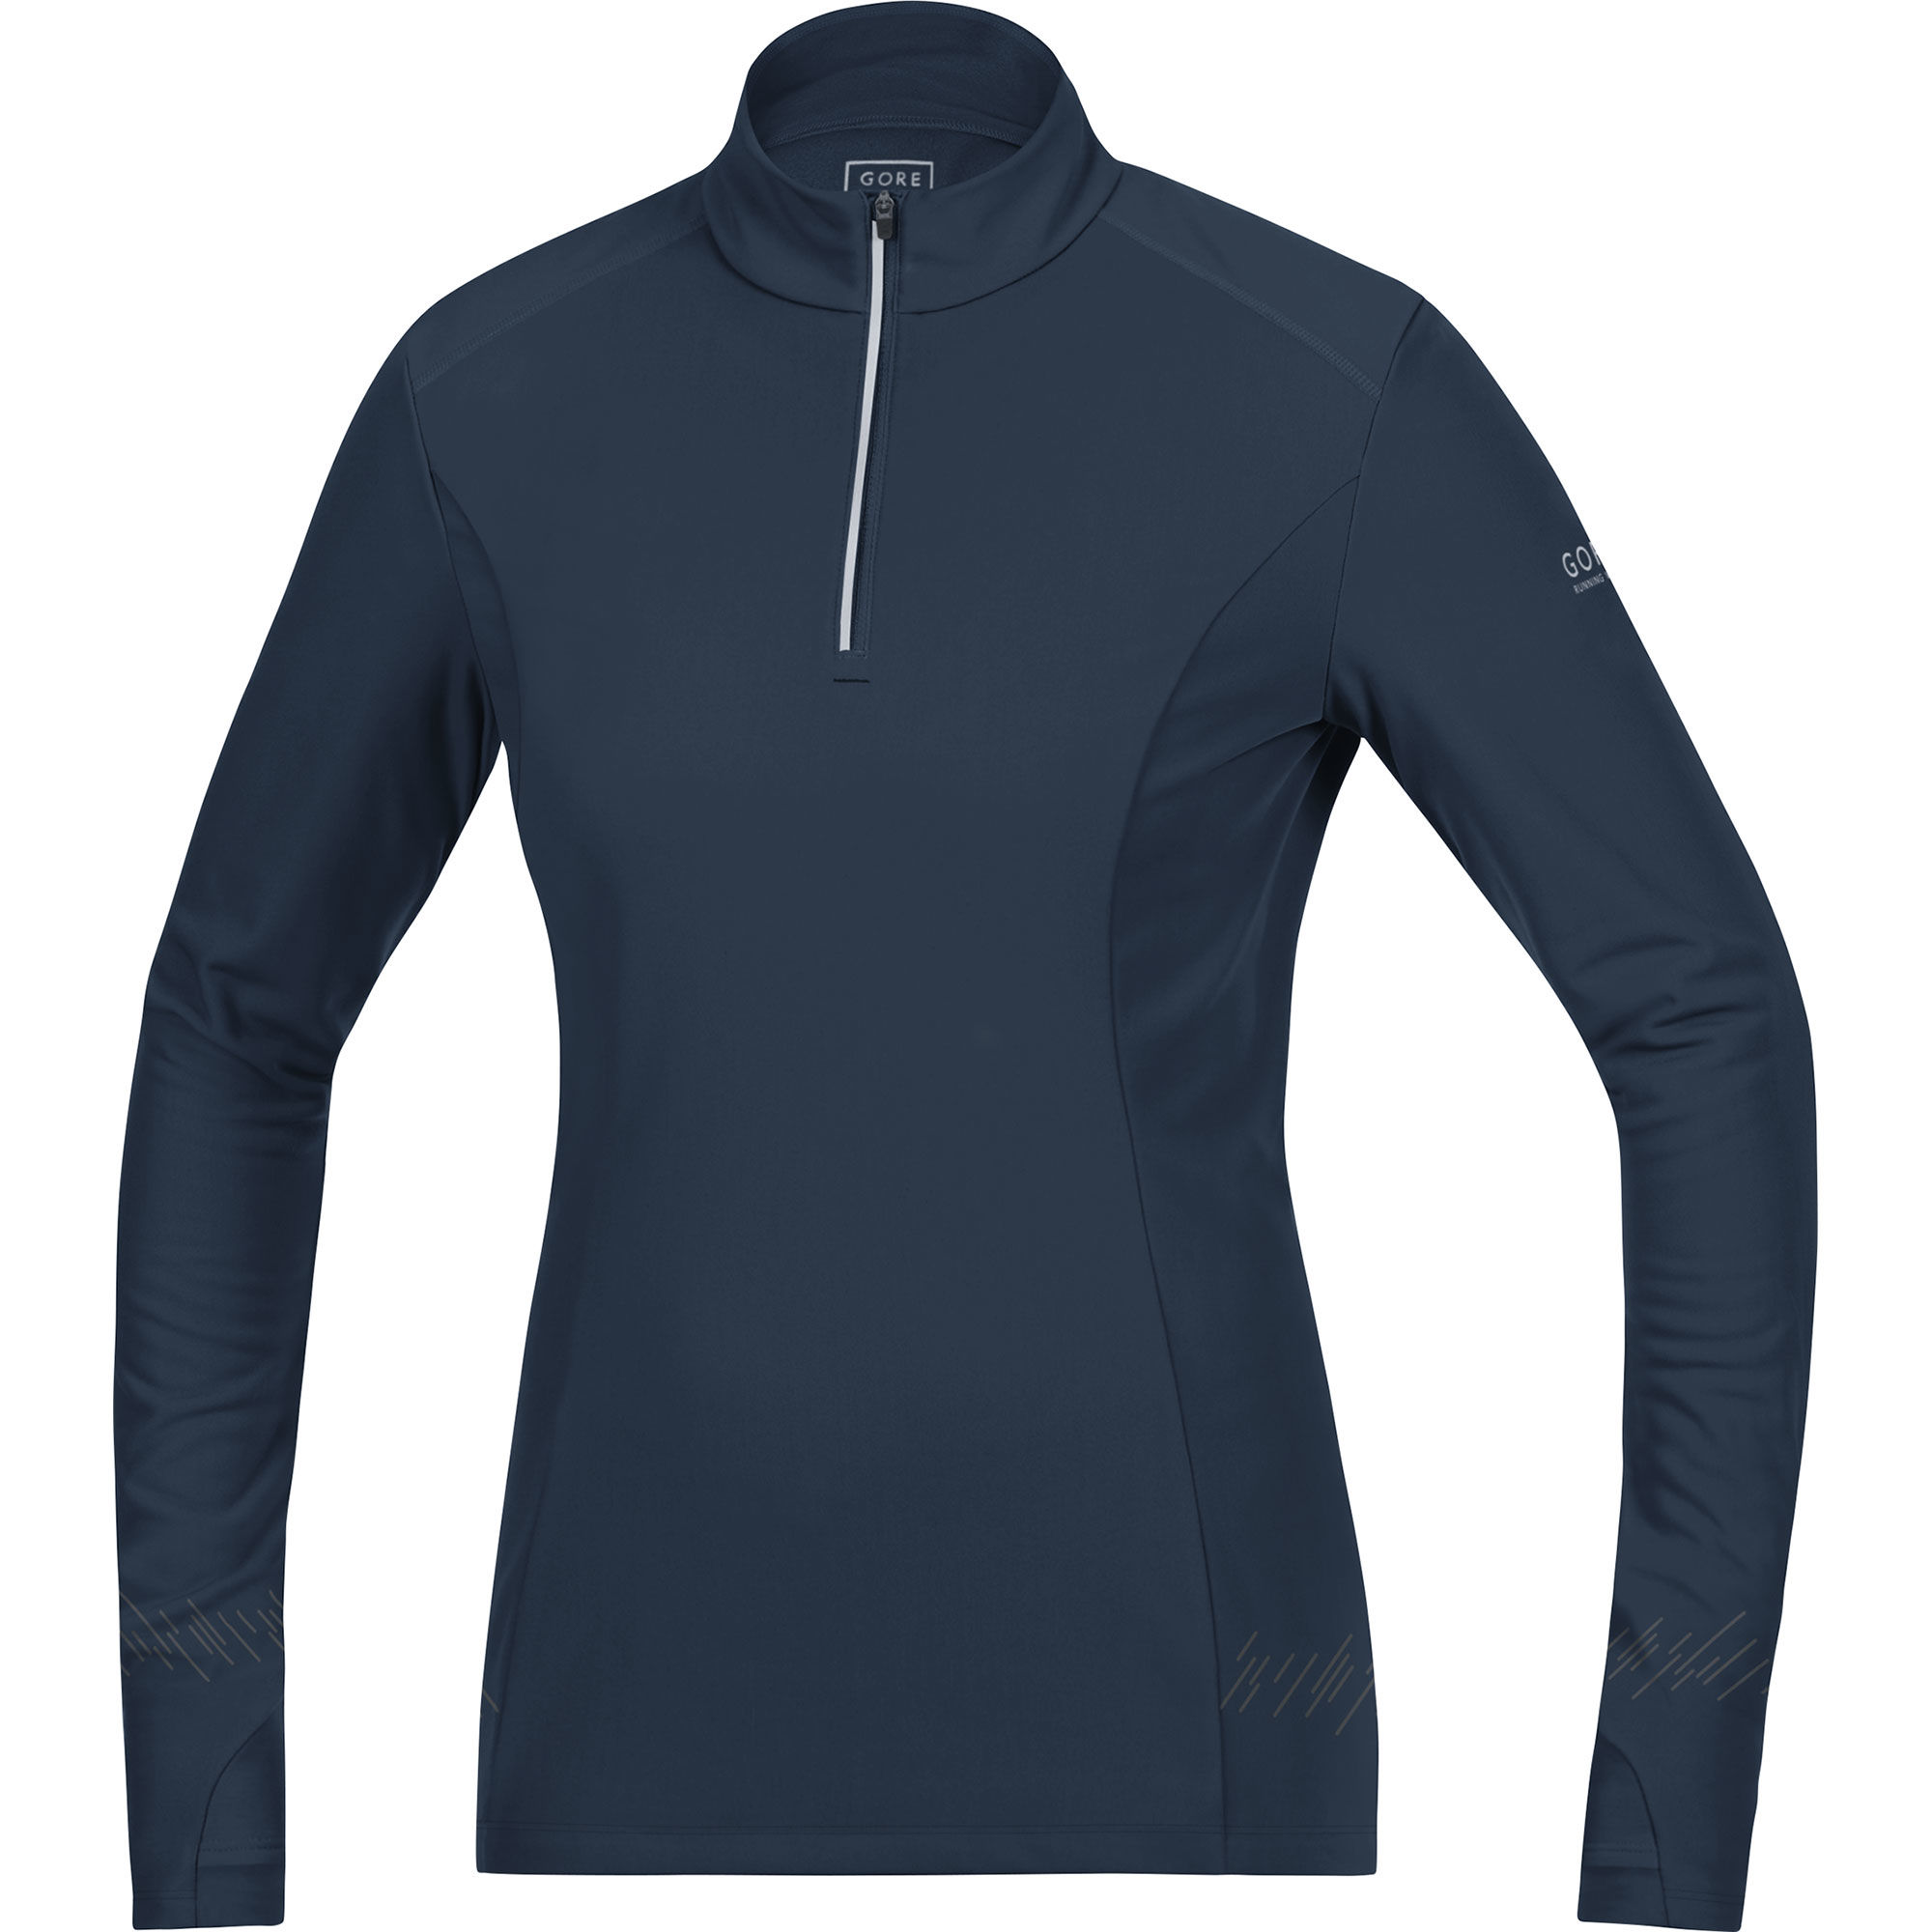 Gore Mythos Lady 2.0 Thermo Shirt in Dunkelblau